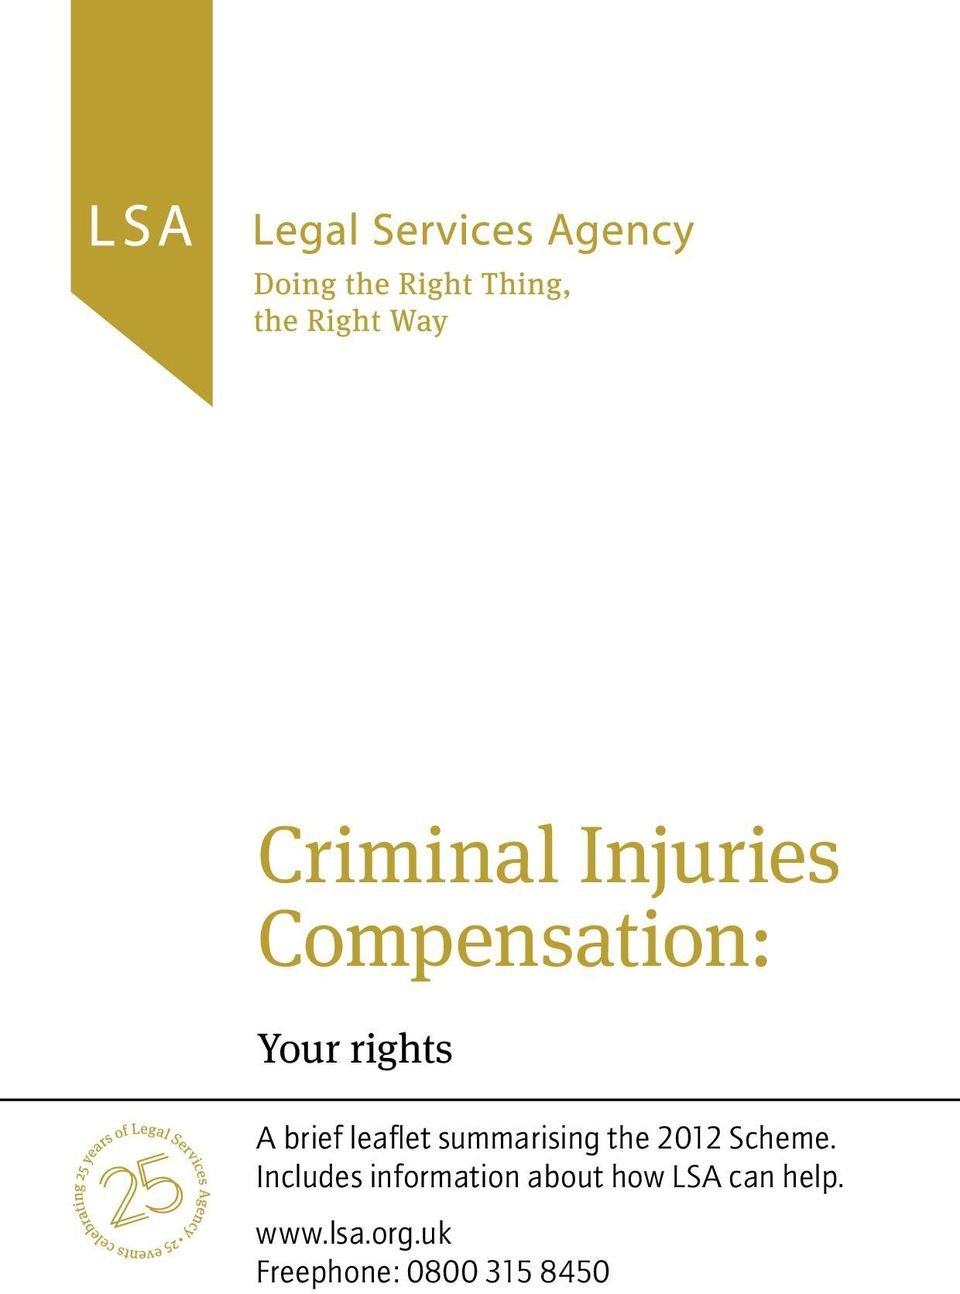 Includes information about how LSA can help.